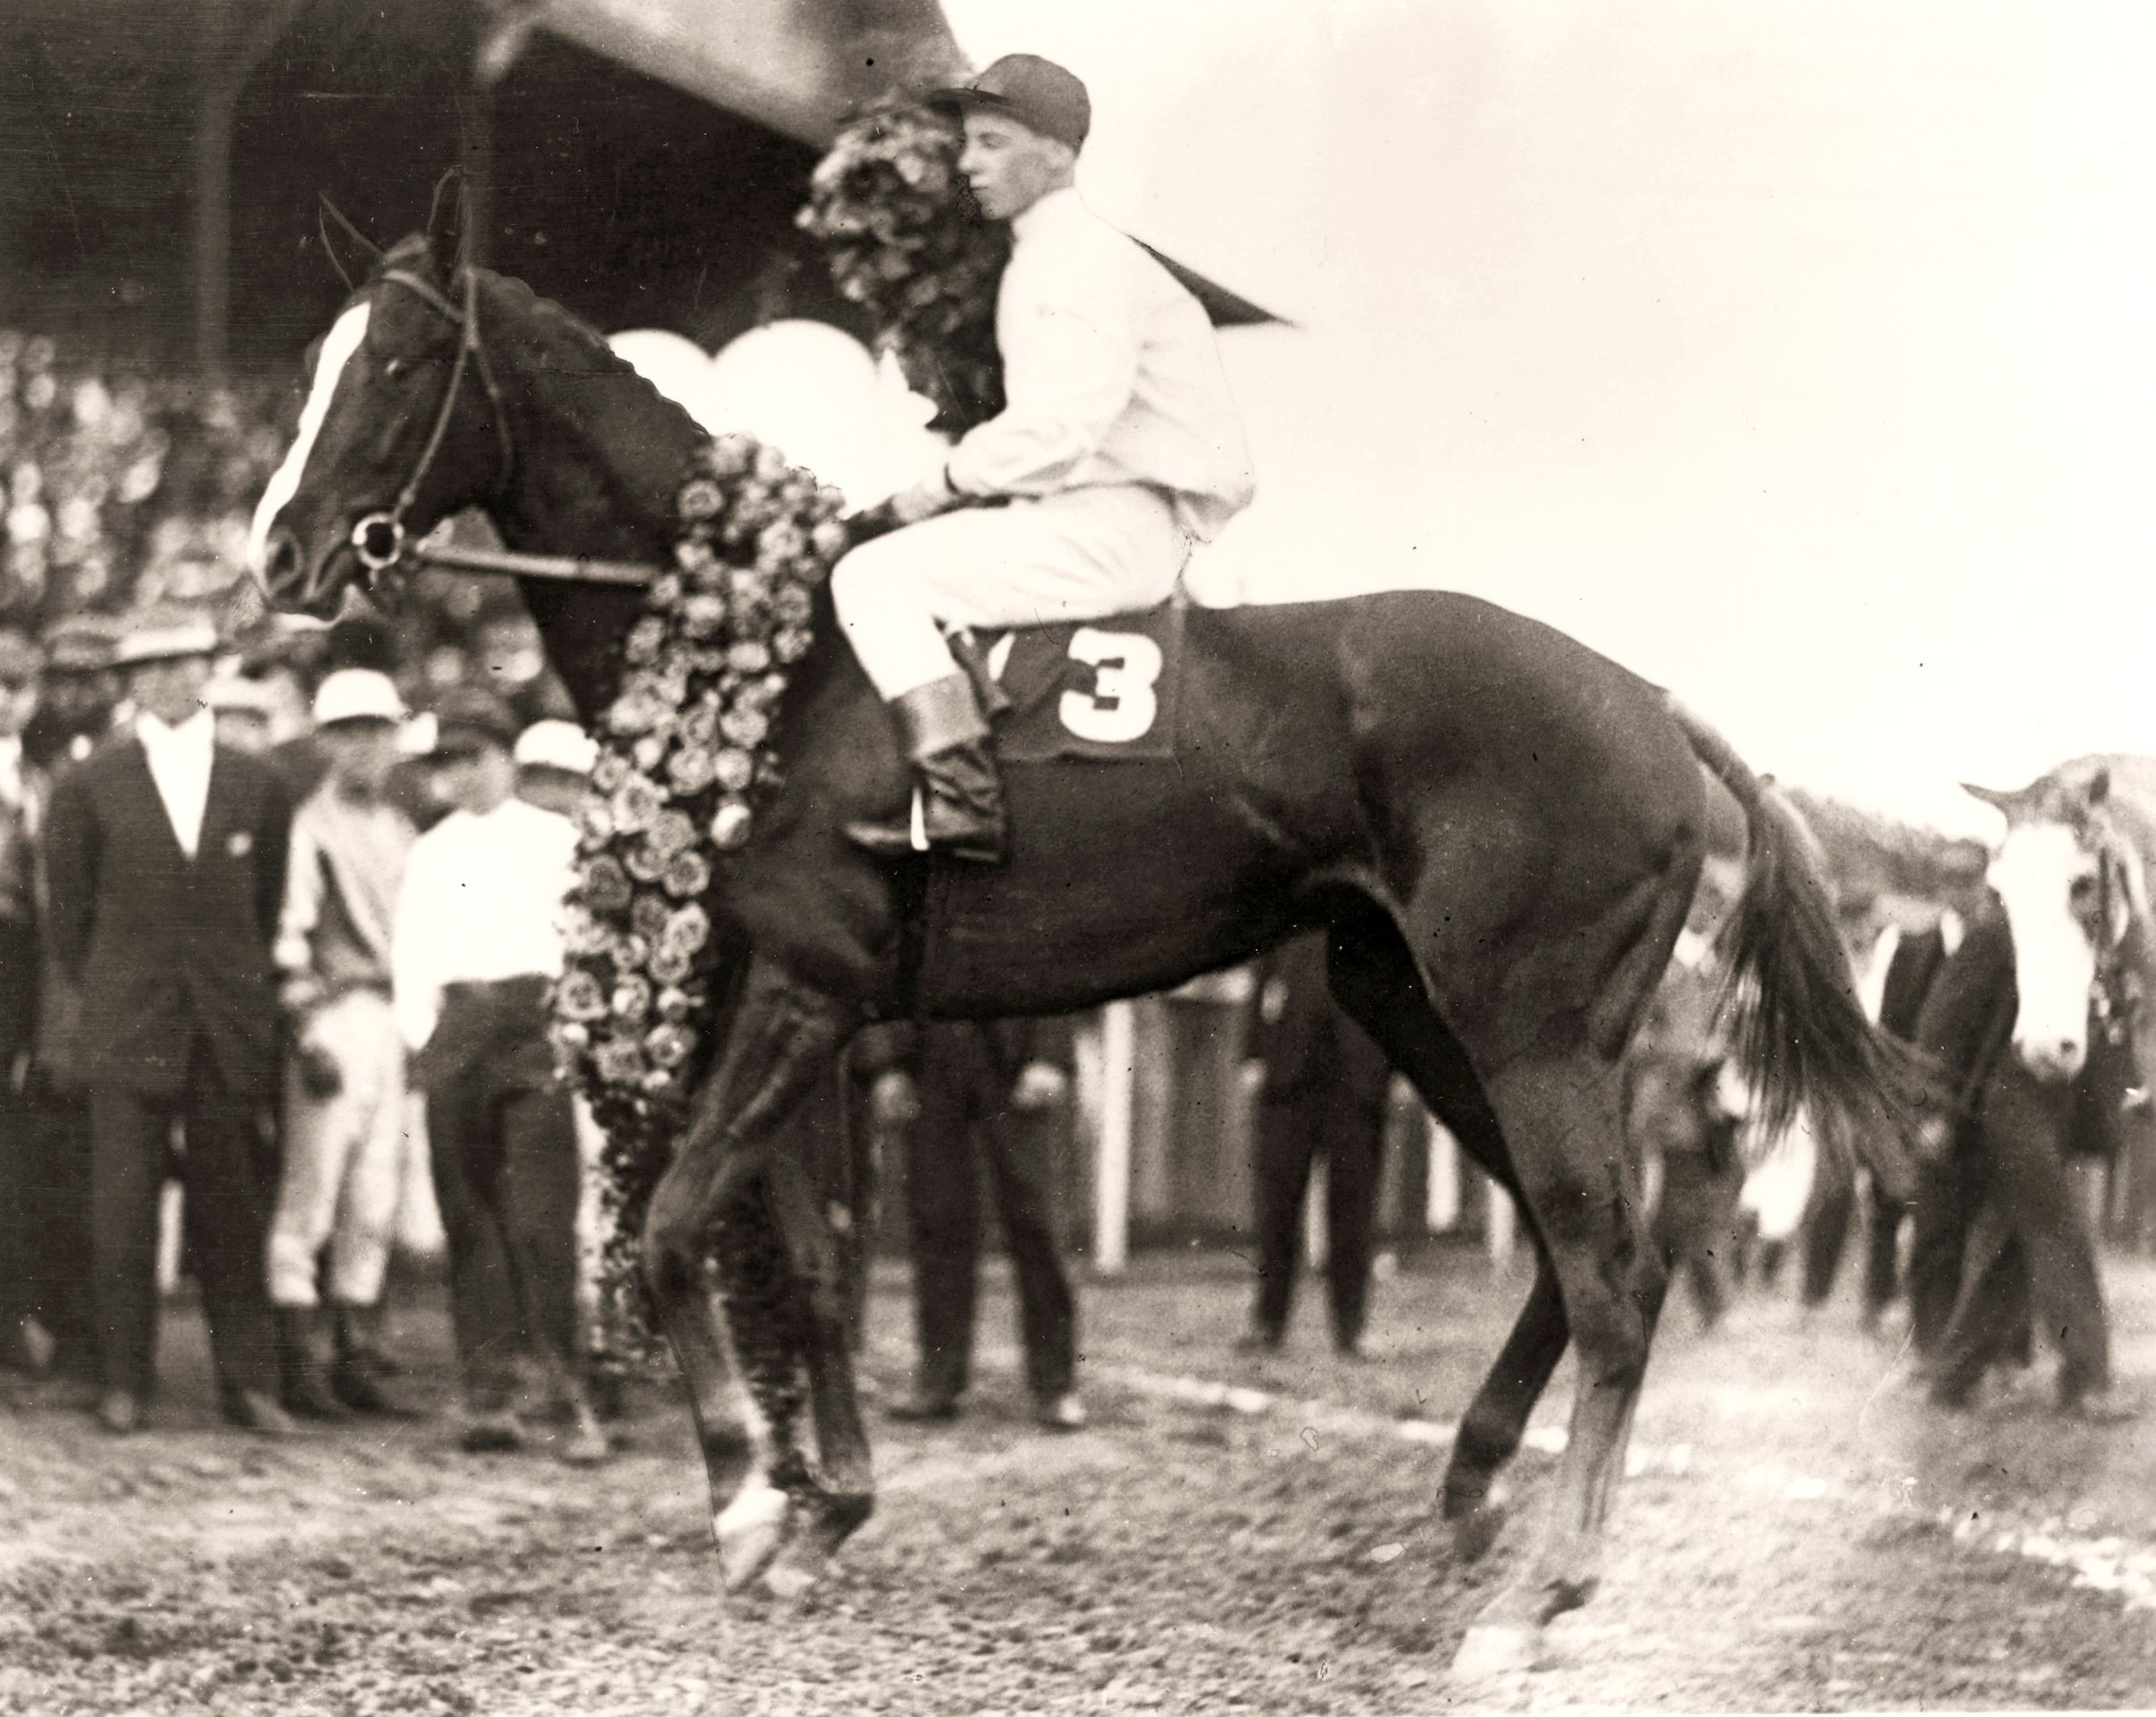 Regret (Joe Notter up) in the winner's circle after the 1915 Kentucky Derby (Churchill Downs Inc./Museum Collection)